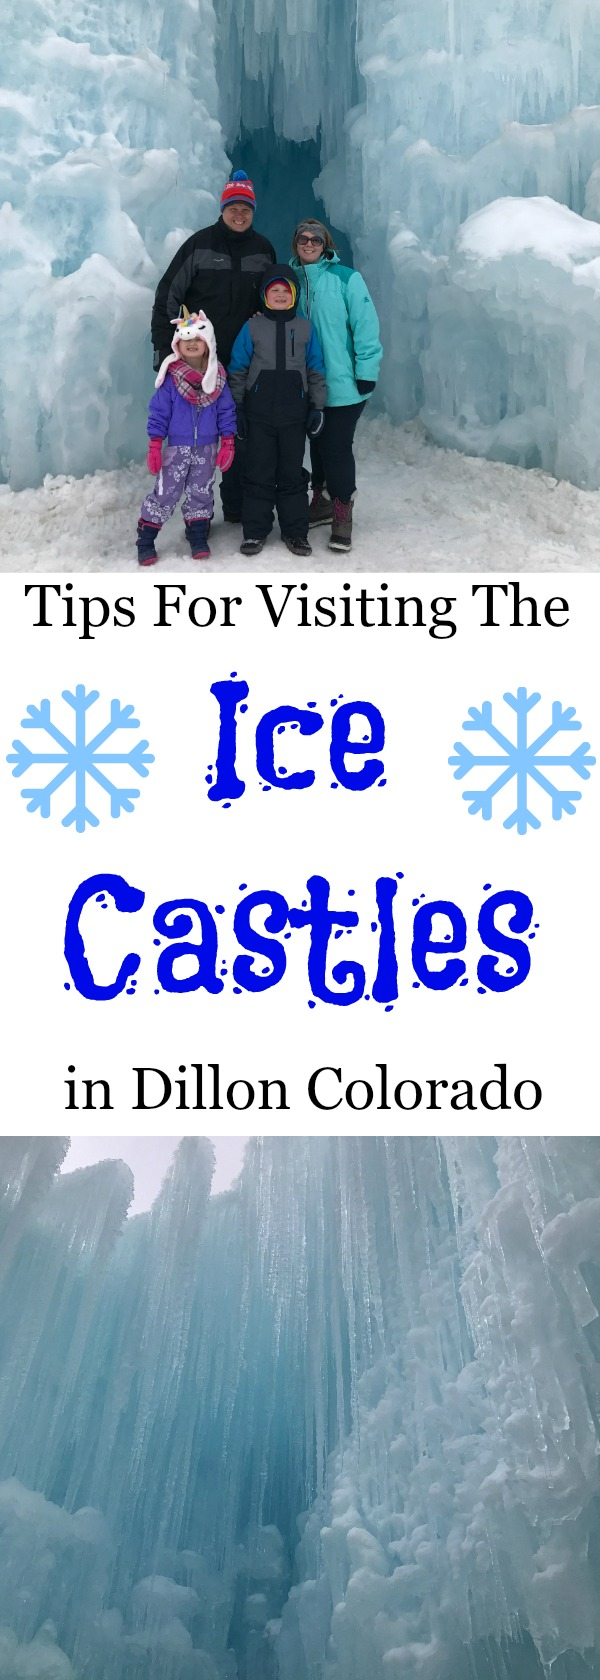 5 Tips For Visiting The Ice Castles In Dillon Colorado, Visit The Ice Castles In Dillon Colorado, ice castles, tips for visiting the ice castles in colorado, winter activities in colorado, ice castles dillon, ice castles denver, ice castles, where do I see the ice castles